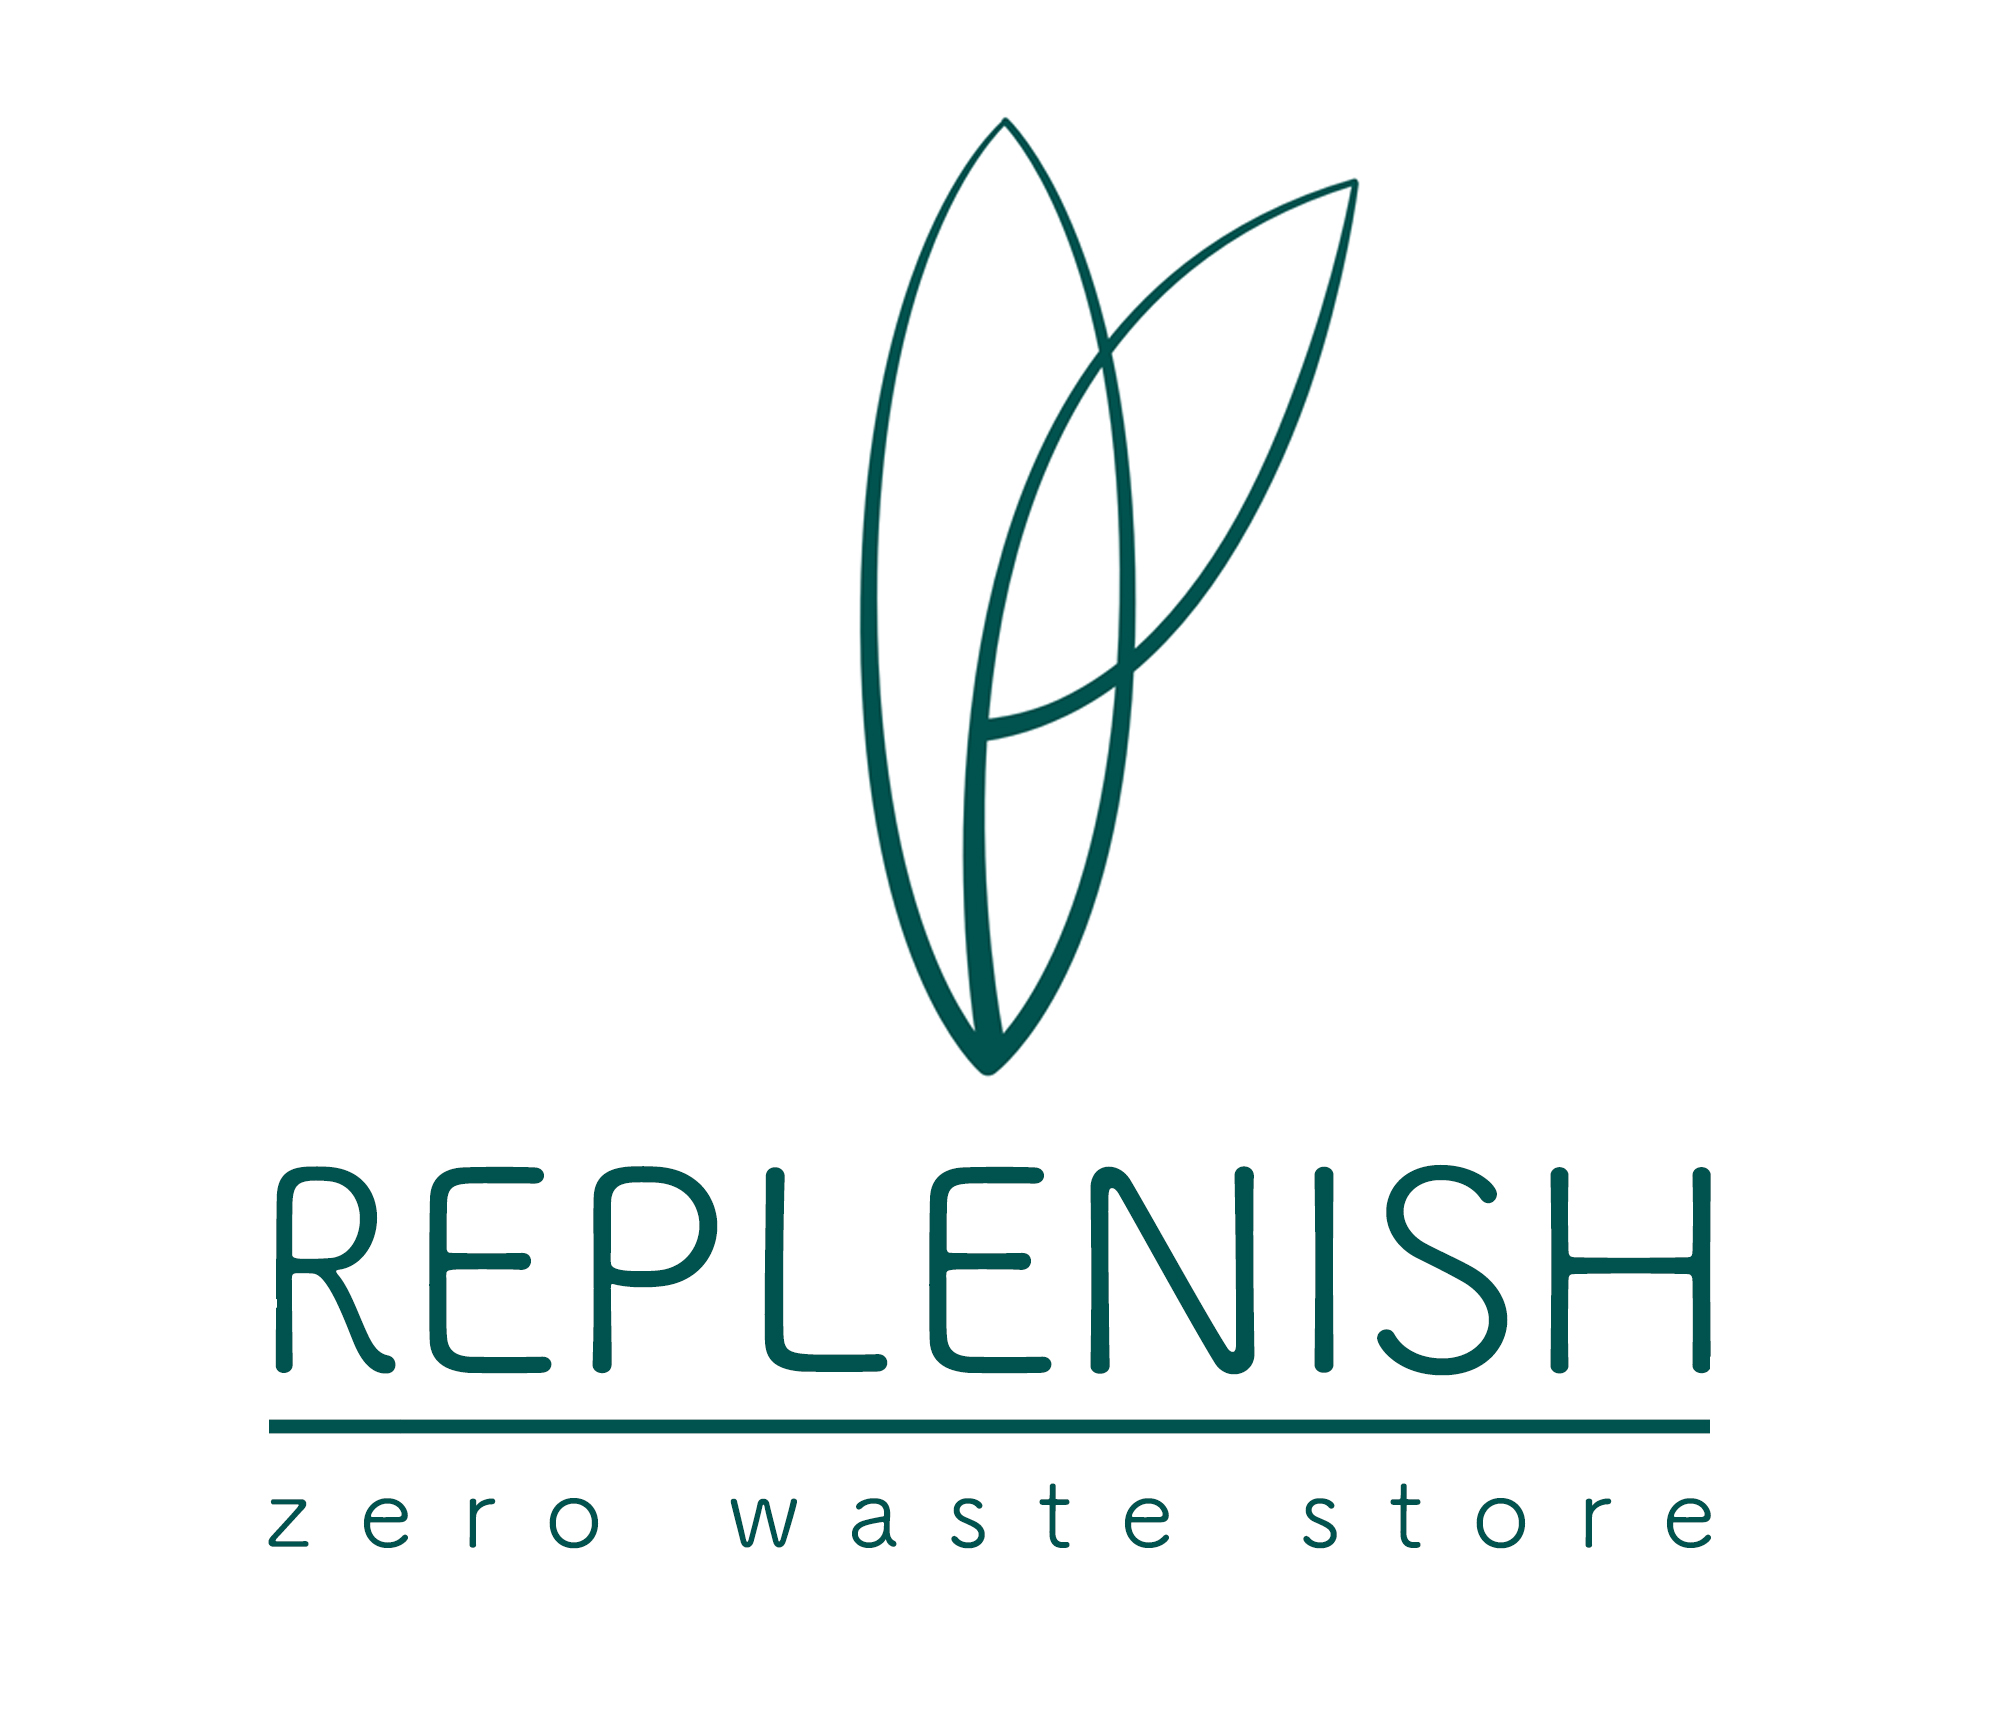 REPLENISH is a new zero waste store OPEN NOW at Hawksfield. Offering a range of affordable plastic free food refills as well as eco friendly alternatives to popular household and personal hygiene items. With ample free parking and a fantastically easy to get to location reducing your plastic consumption couldn't be easier, just bring your own containers or use our compostable paper bags and buy as much or as little as you need. -